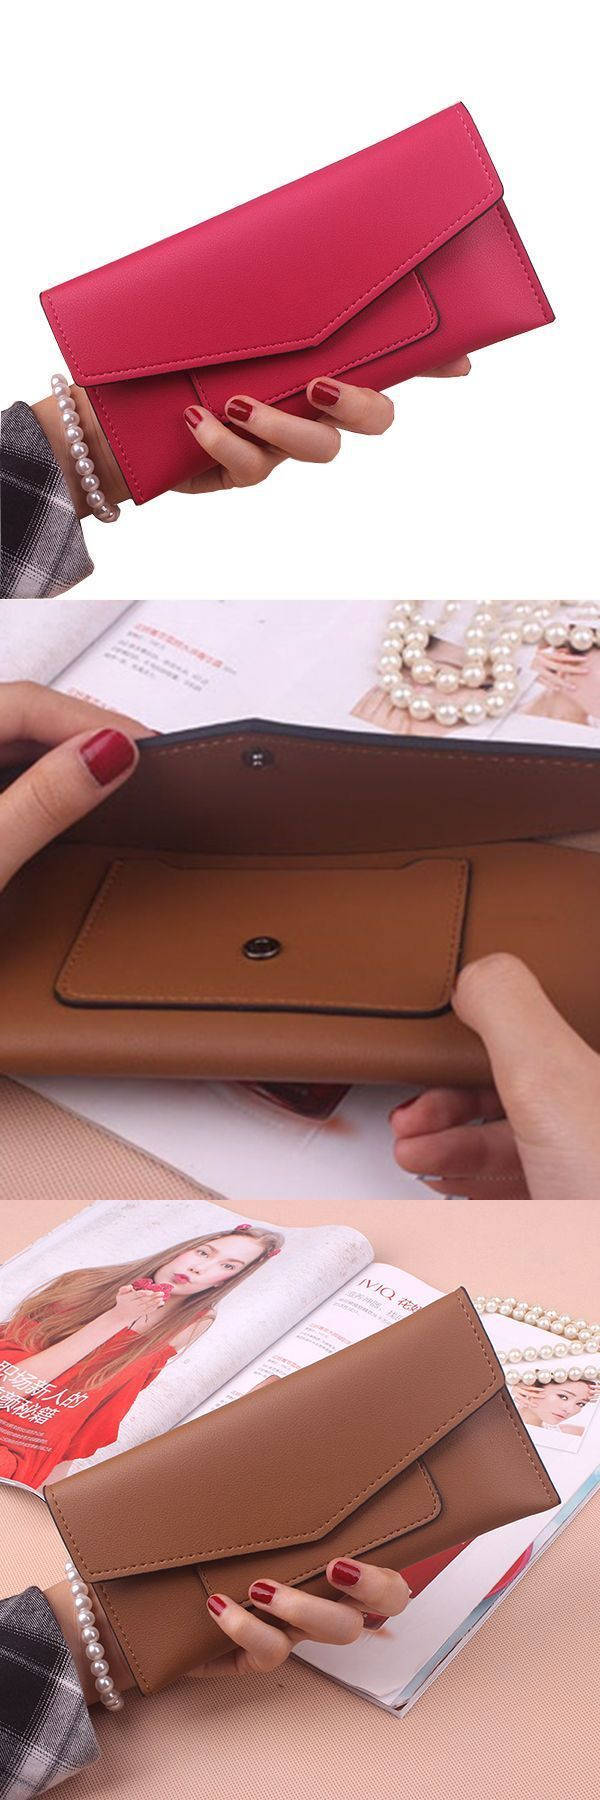 Damp;g wallets price in india women pu leather ultra thin card holder wallets purse functional wallet #4 #wallets #size #e #wallets #uk #l #fold #wallets #quilted #wallets